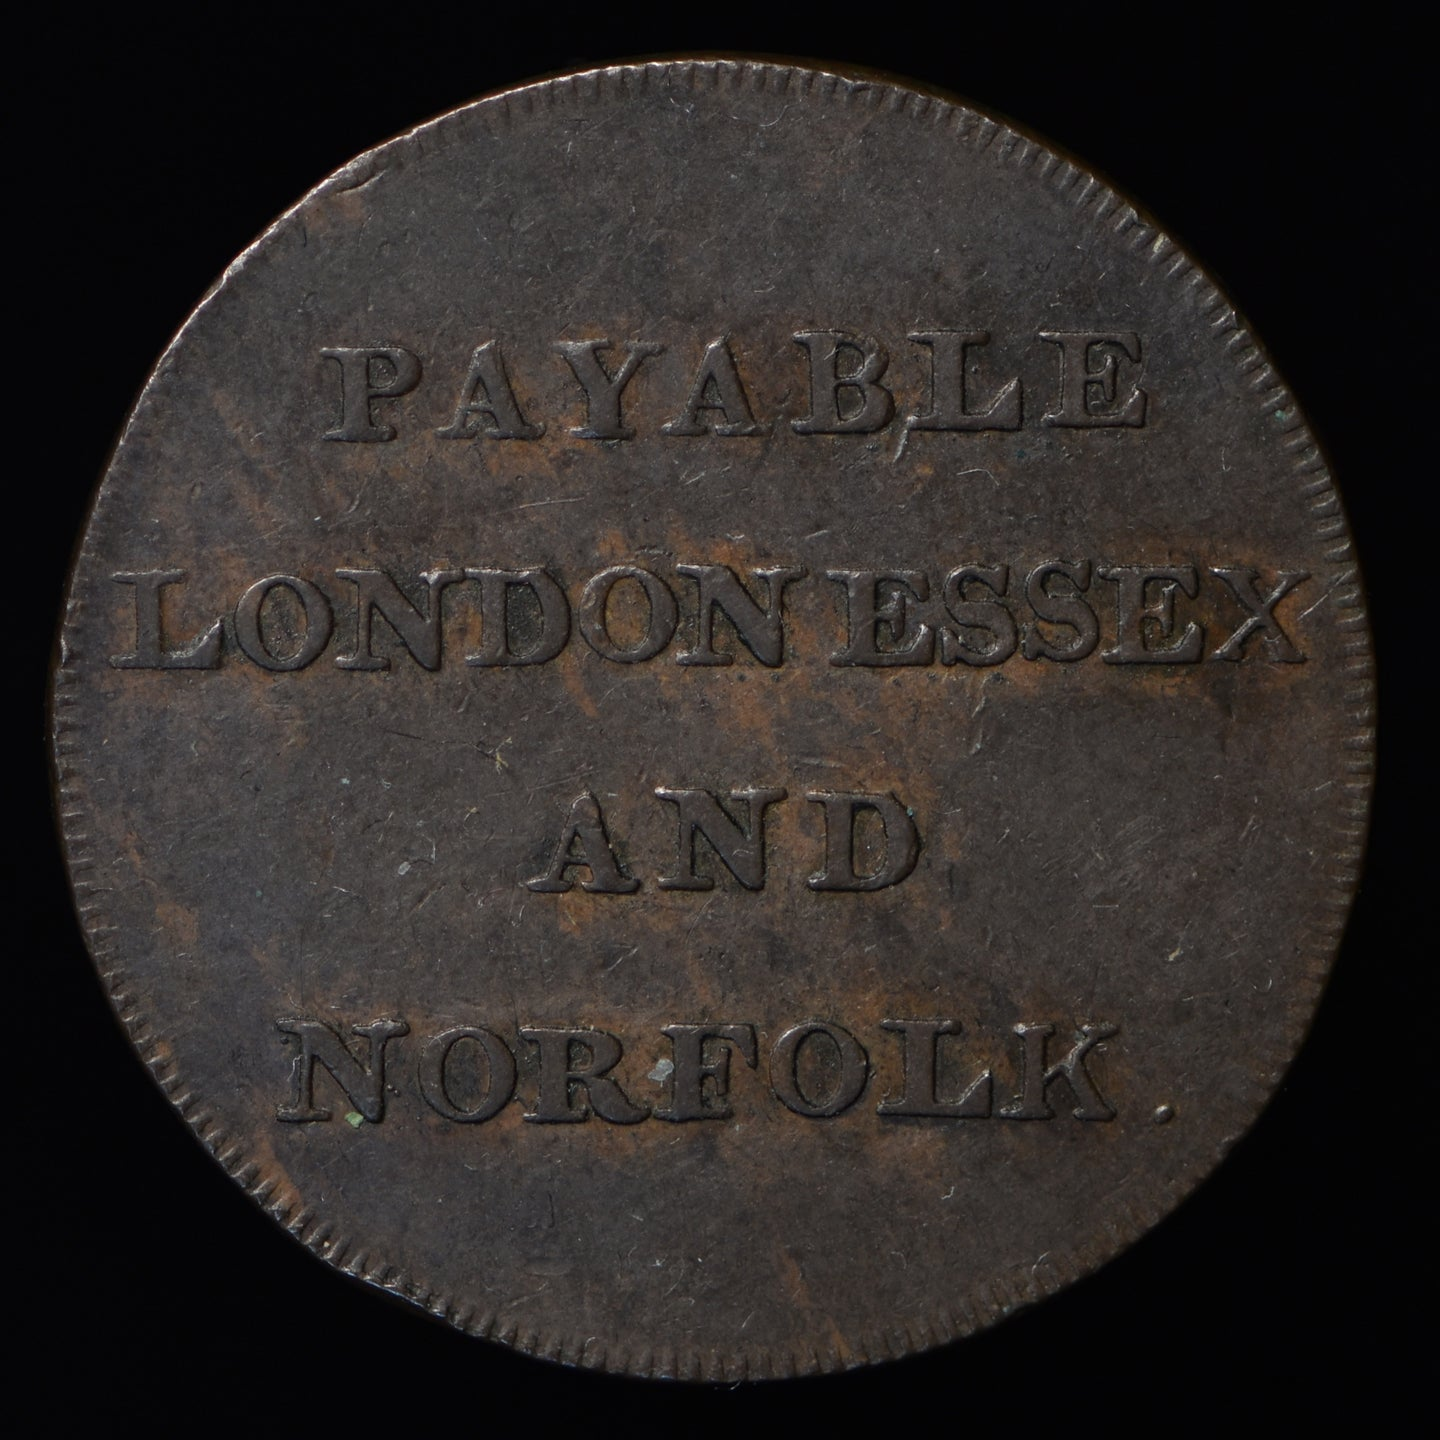 Middlesex D&H 923 Misc. (London, Essex, & Norfolk)